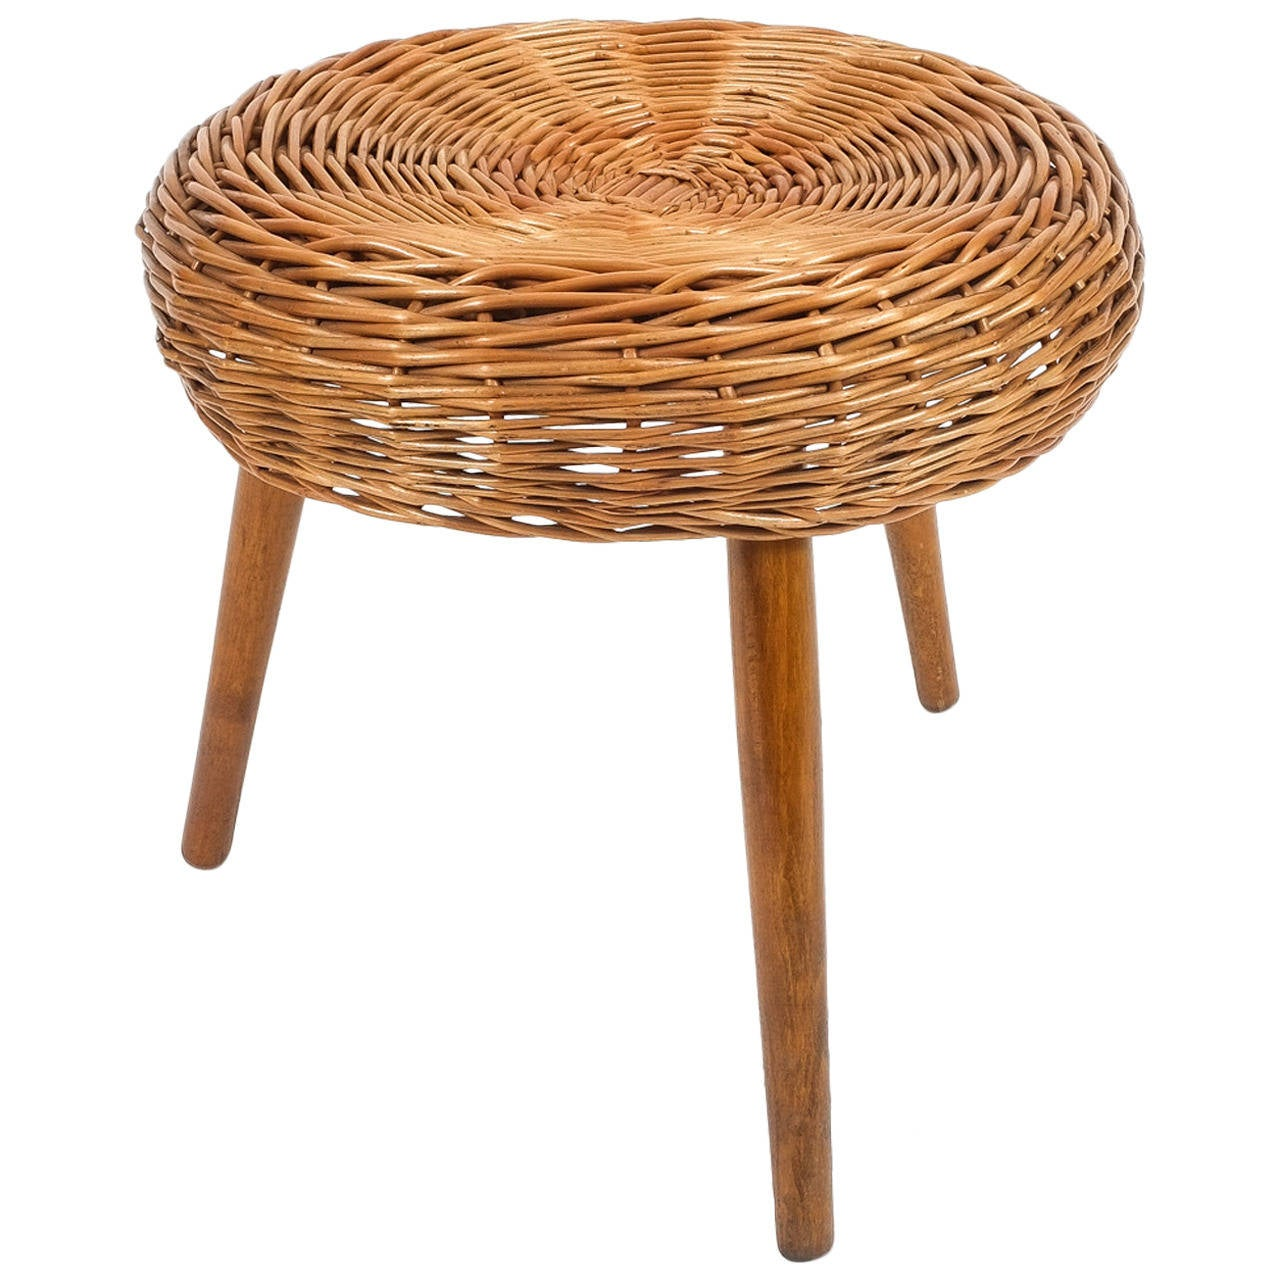 Tony Paul Wicker Stool At 1stdibs